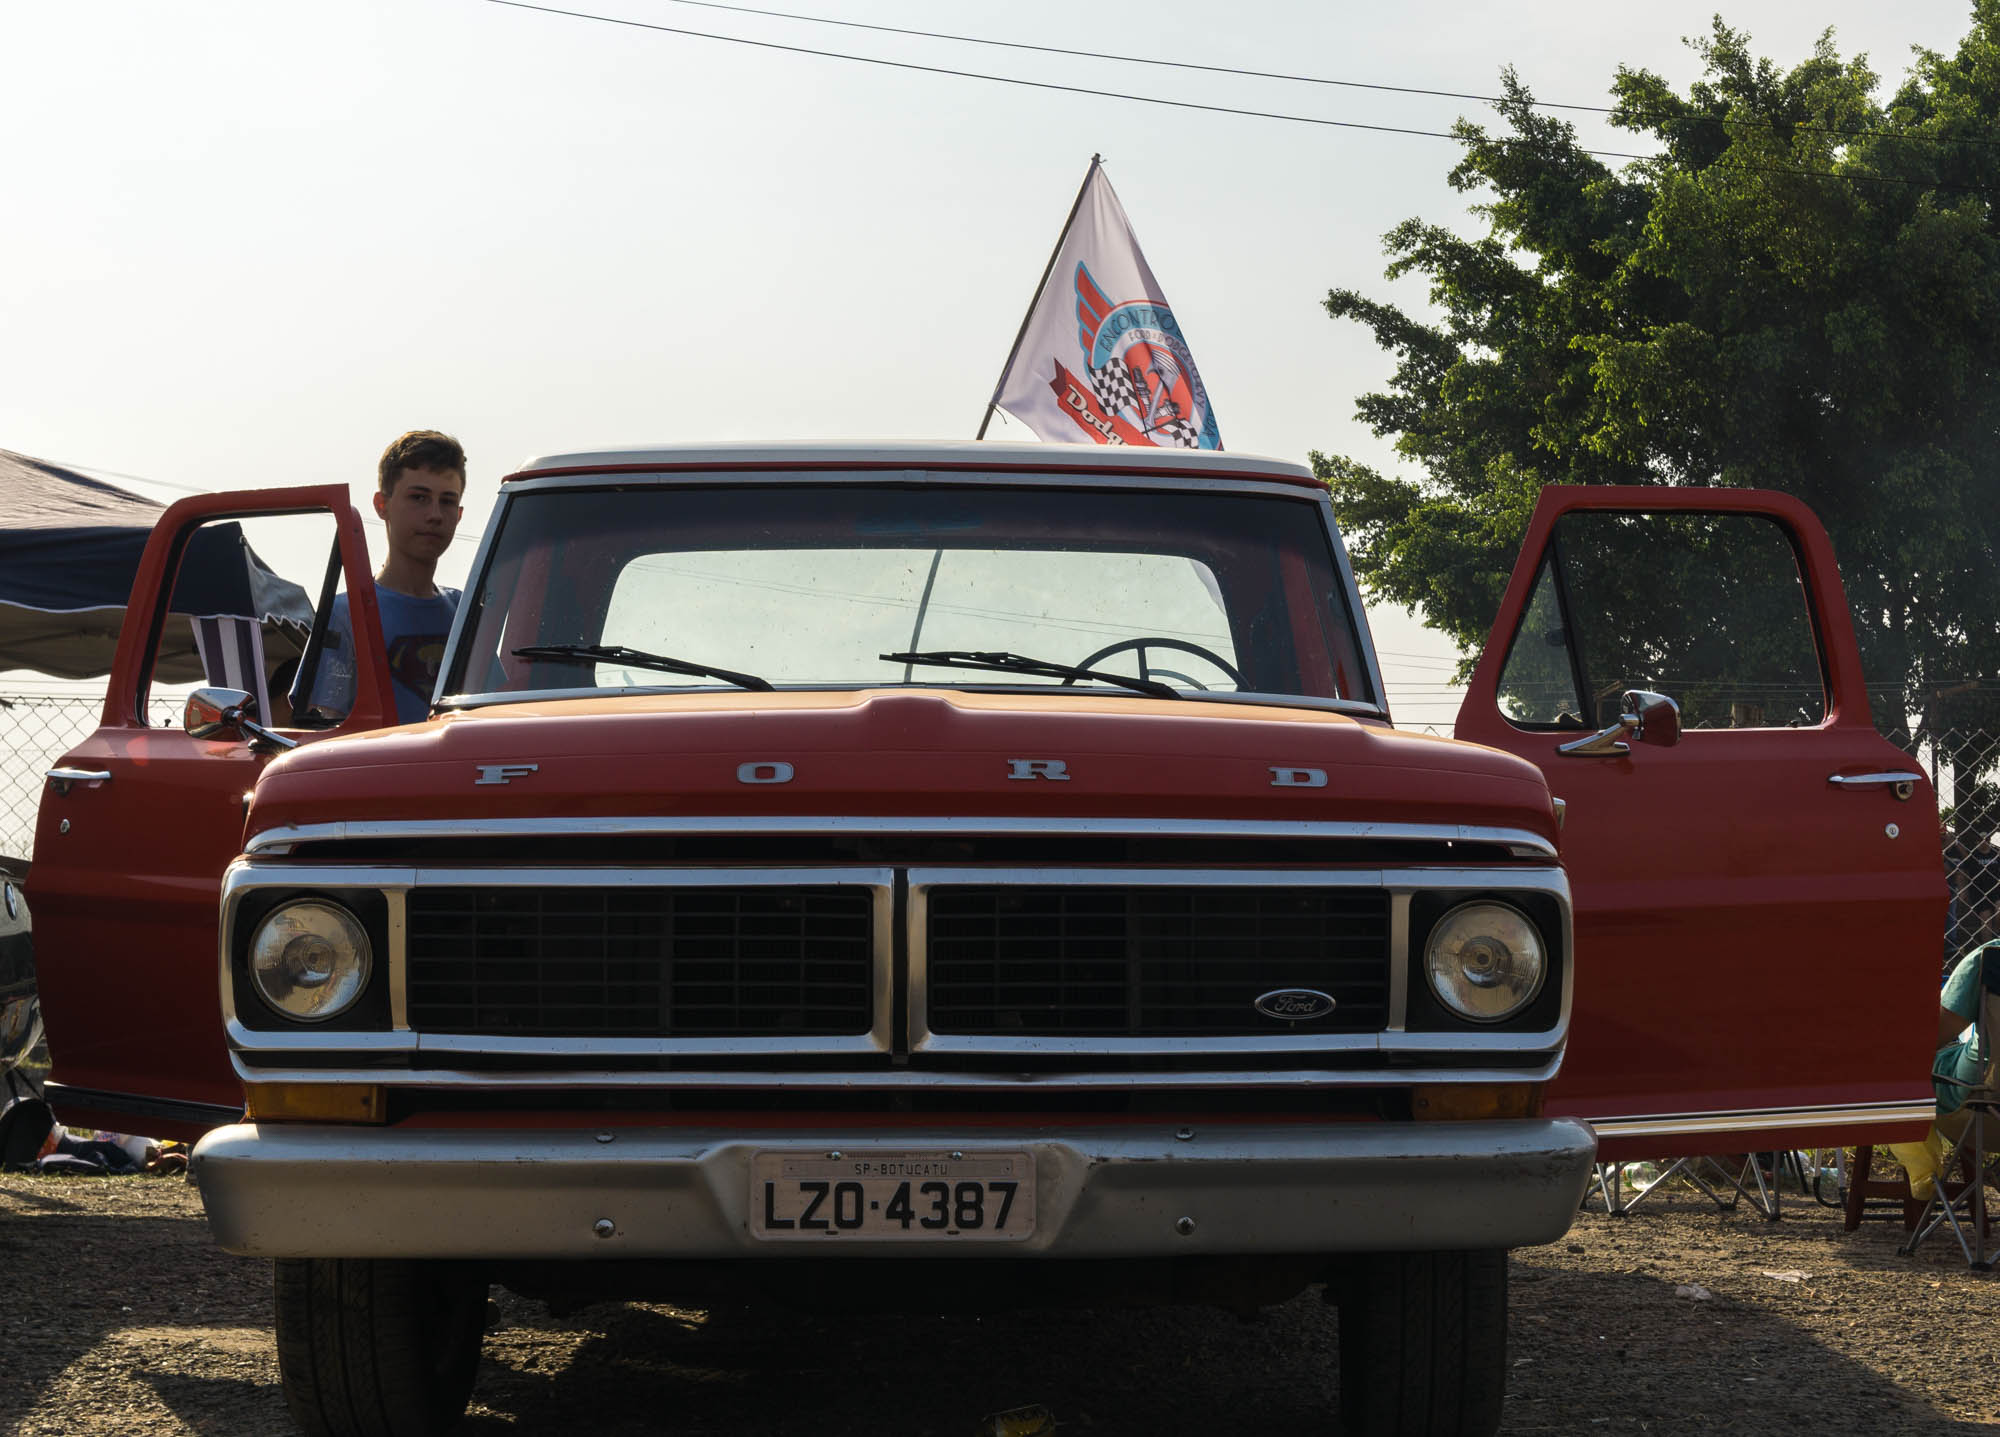 Boy Gets into Classic Red Ford Pickup Truck